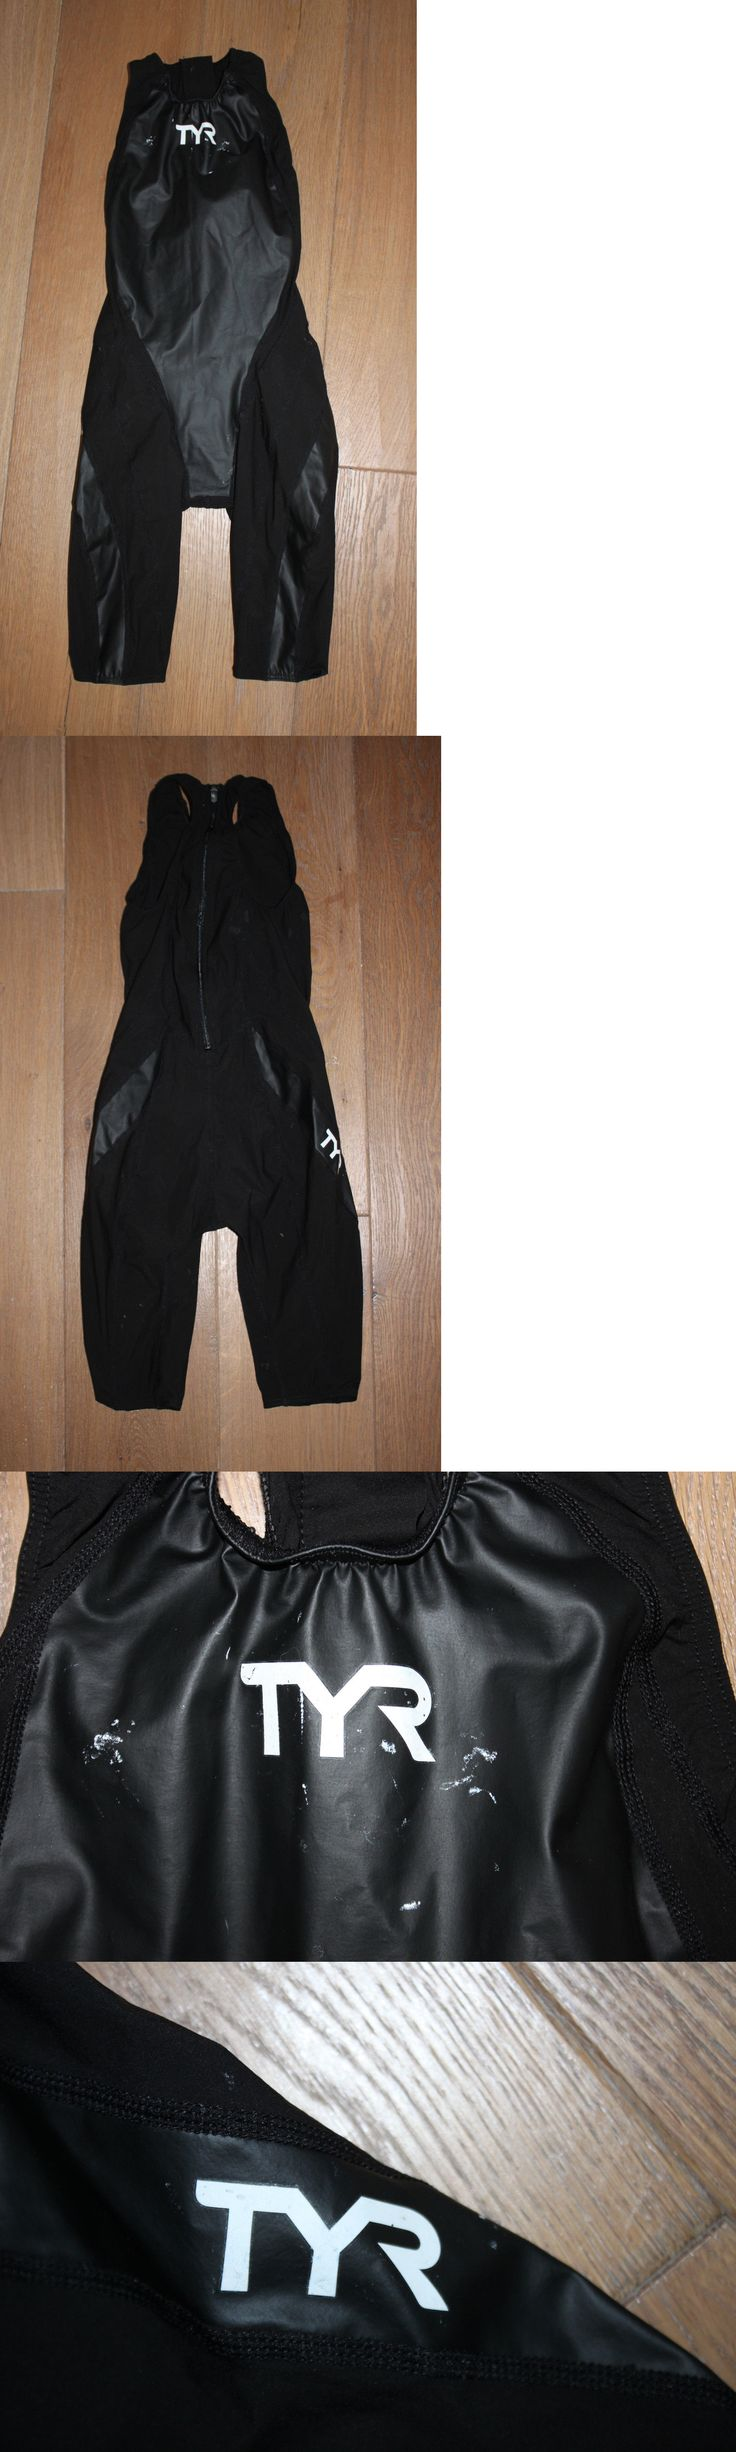 Women 140051: New Tyr Womens Black Tracer Rise Short John Zipper Back Tri Suit - Usa Made - 28 BUY IT NOW ONLY: $54.95